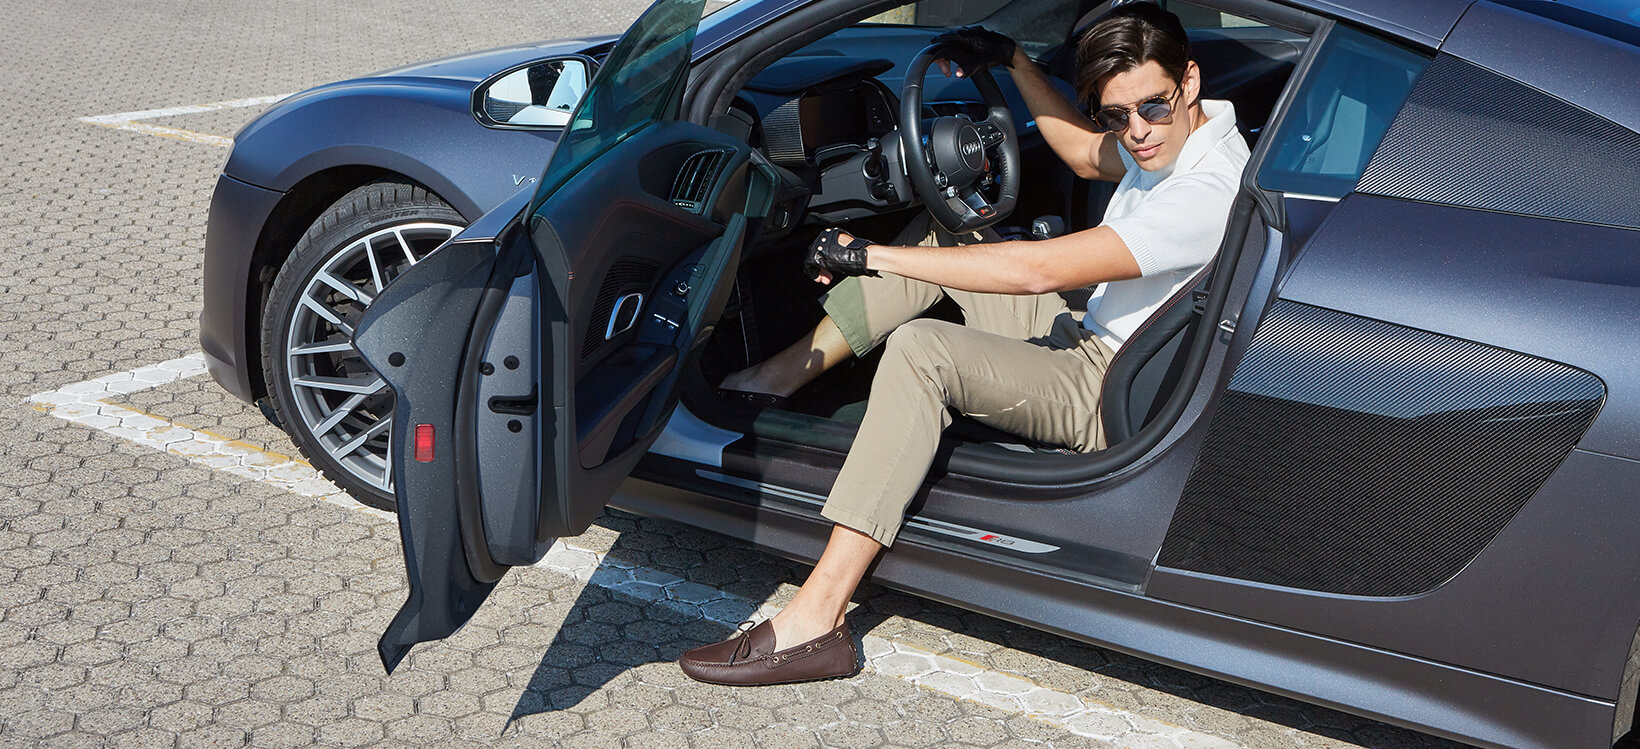 Brown deerskin driving shoes worn by a man dressed in casual style while getting out of a luxury car